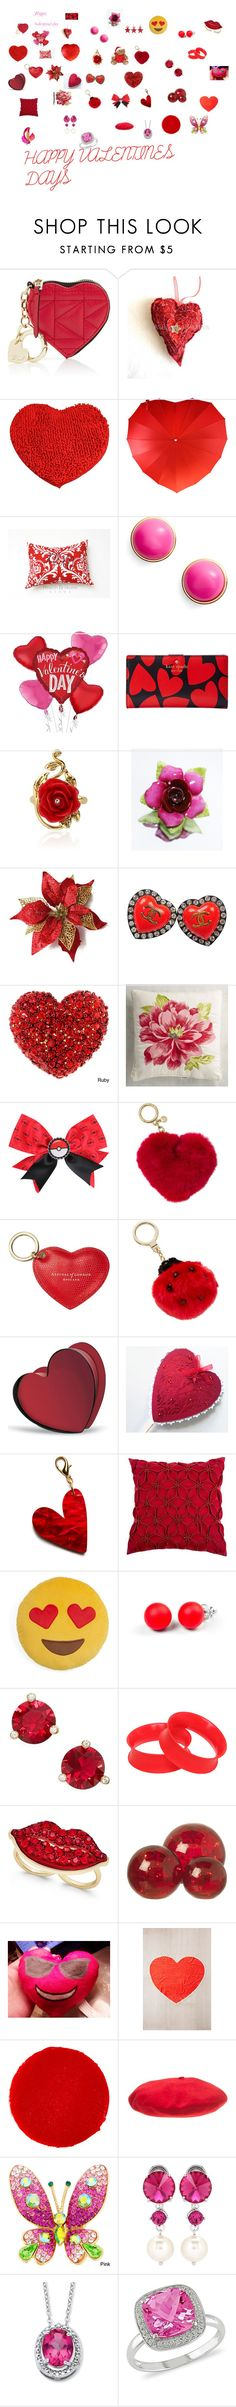 """""""HAPPY VALENTINES DAY"""" by sanablue on Polyvore featuring Karl Lagerfeld, Kate Spade, Disney, Coalport, Chanel, Pier 1 Imports, Nintendo, Michael Kors, Aspinal of London and Baccarat"""